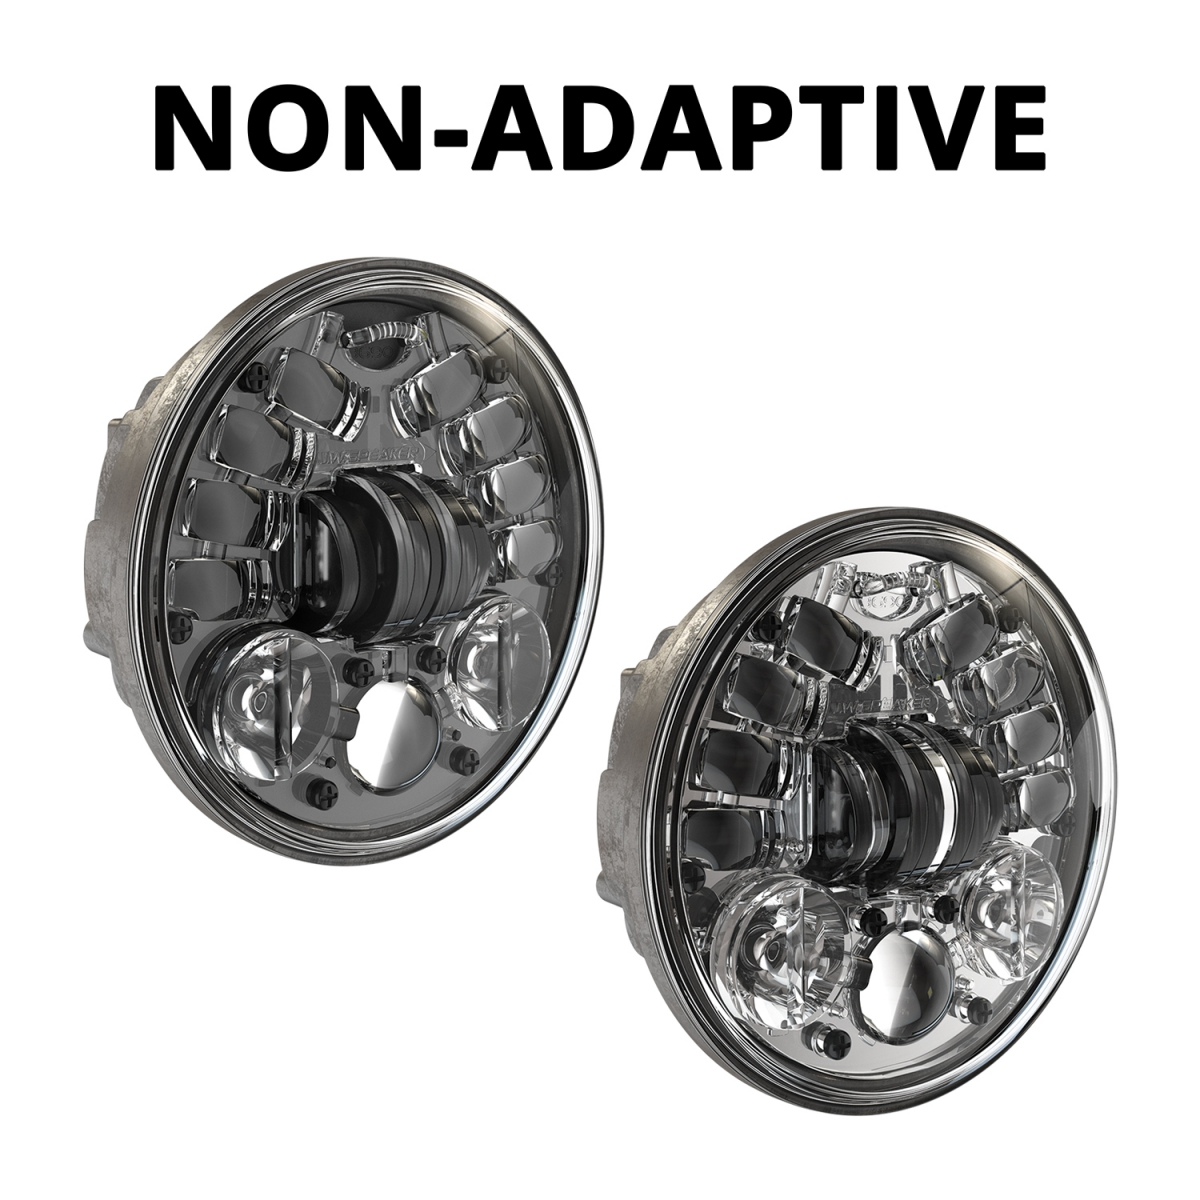 Motorcycle LED Headlights – Model 8690